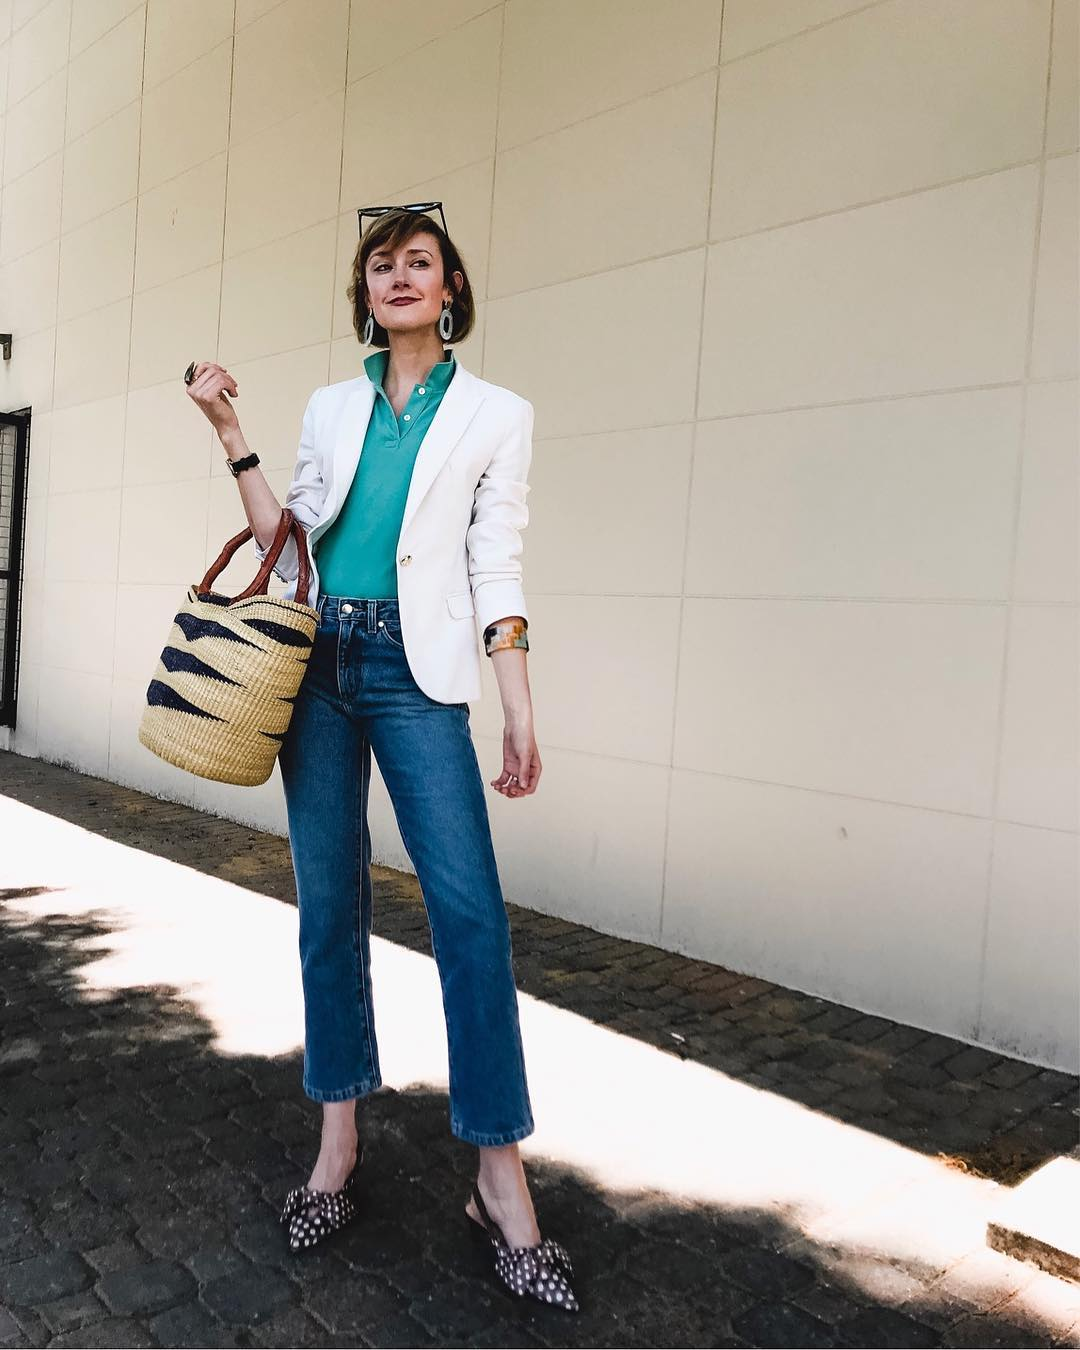 Zara blazer and Need Supply jeans